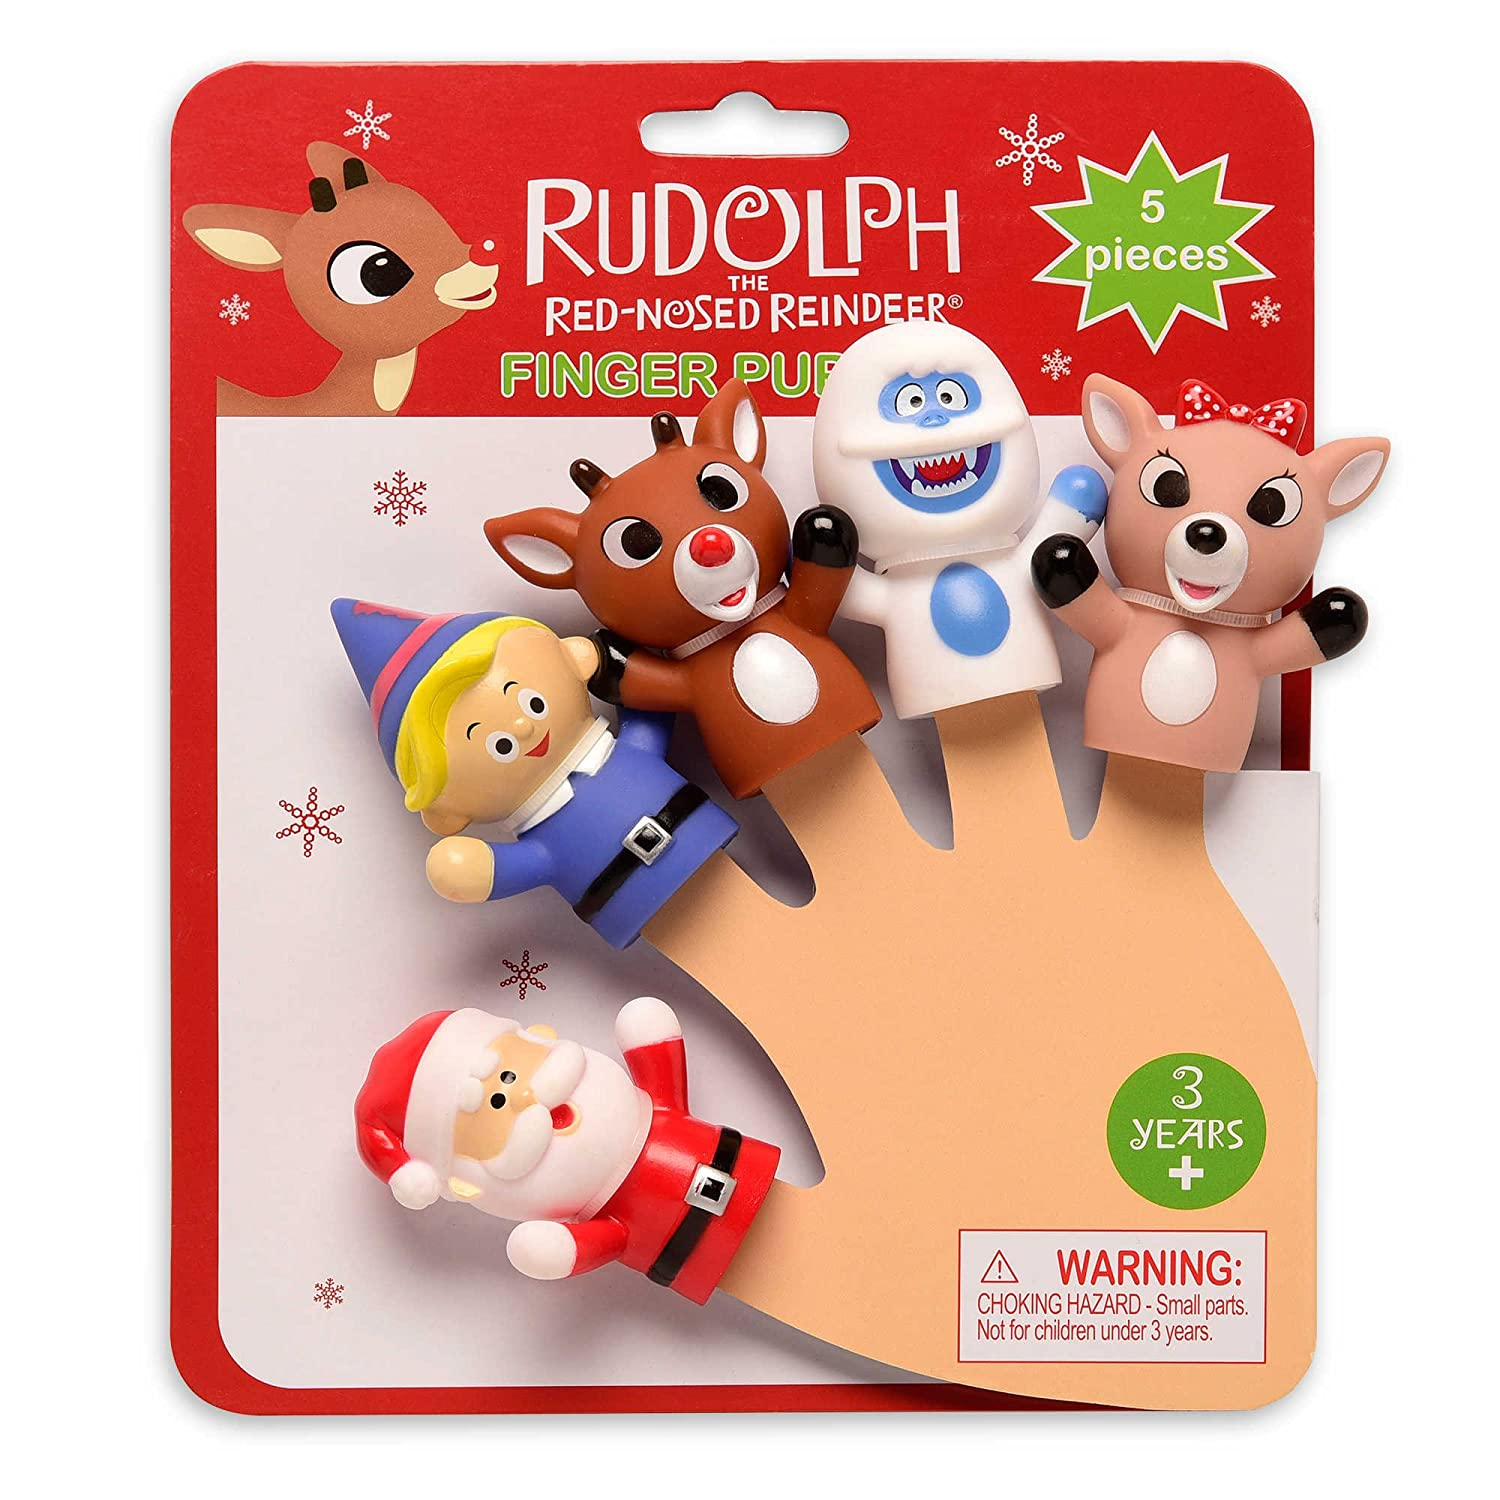 Rudolph The Red-Nosed Reindeer Finger Puppets- 5 Pieces Prestige Toy Corp 96621